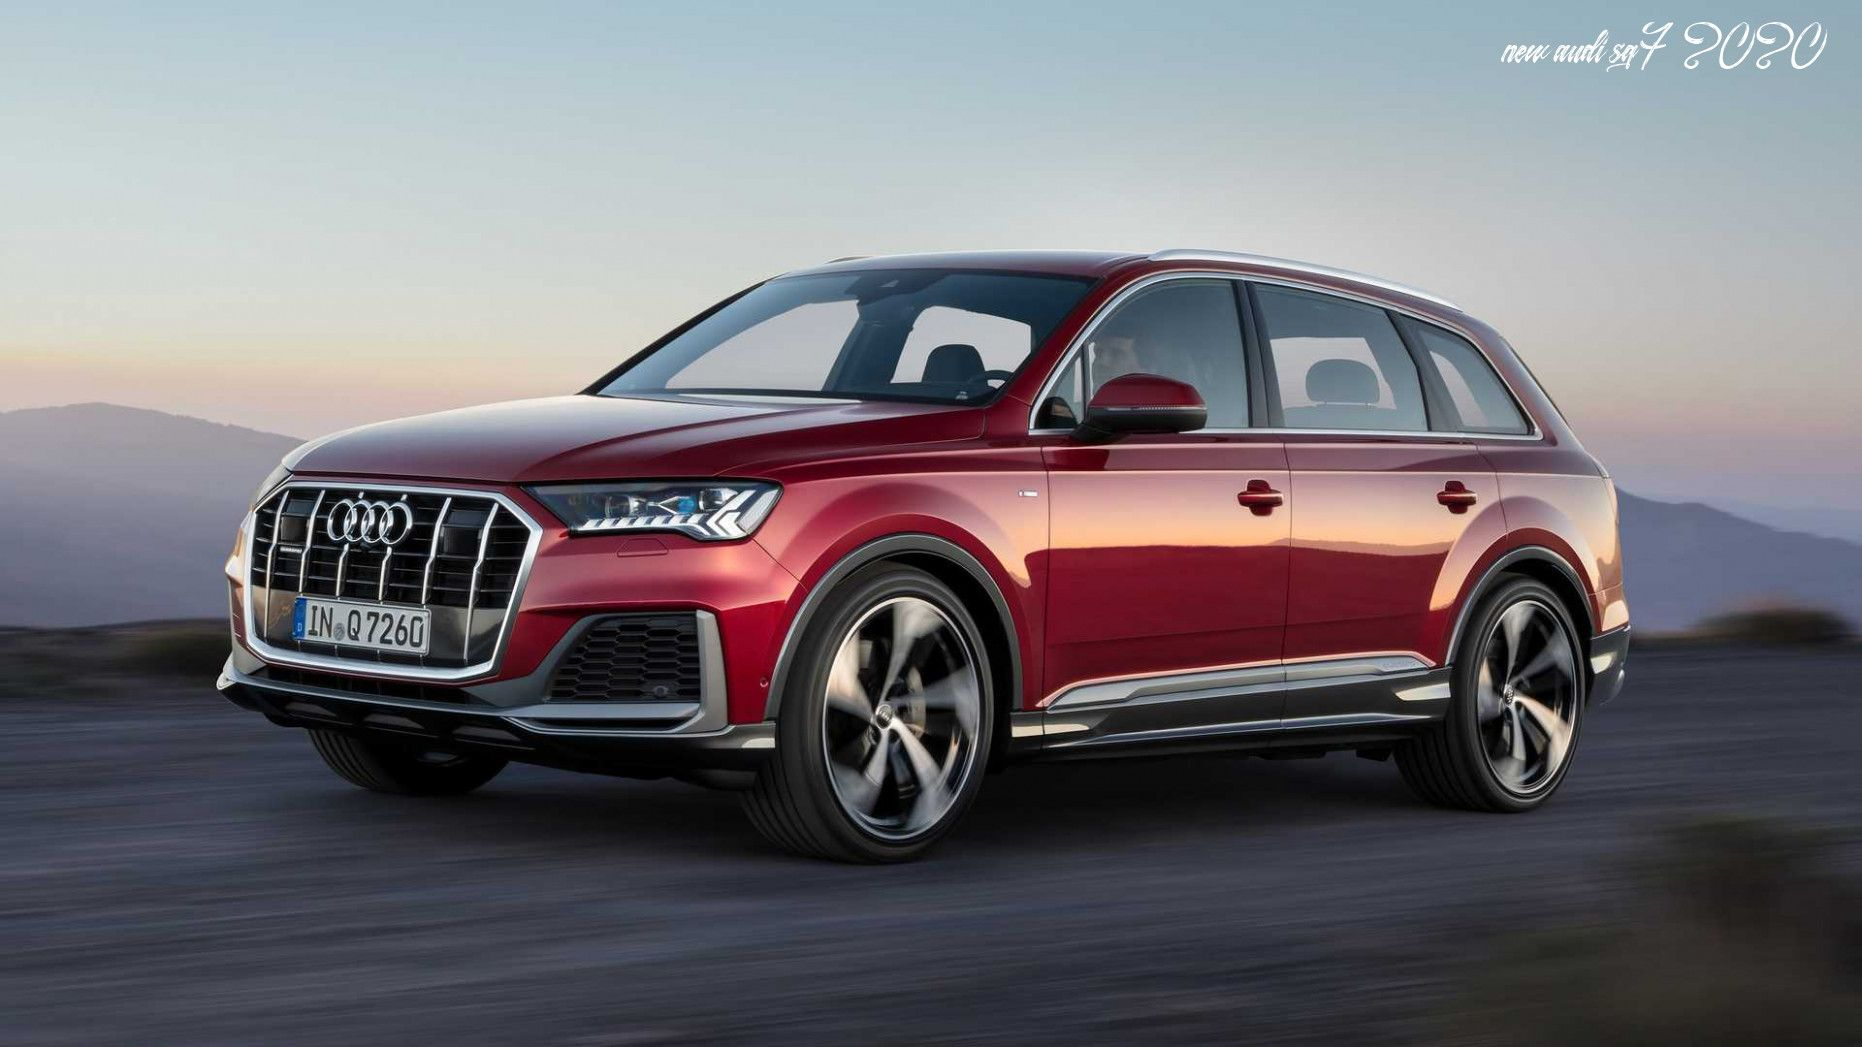 The 2020 Audi Sq7 Takes Audi S Award Winning Q7 Midsize Luxury Suv And Amplifies It With A 4 0 Liter Tfsi V8 Engine Producing Up To 500 H 2020 Audi Luxury Suv Suv